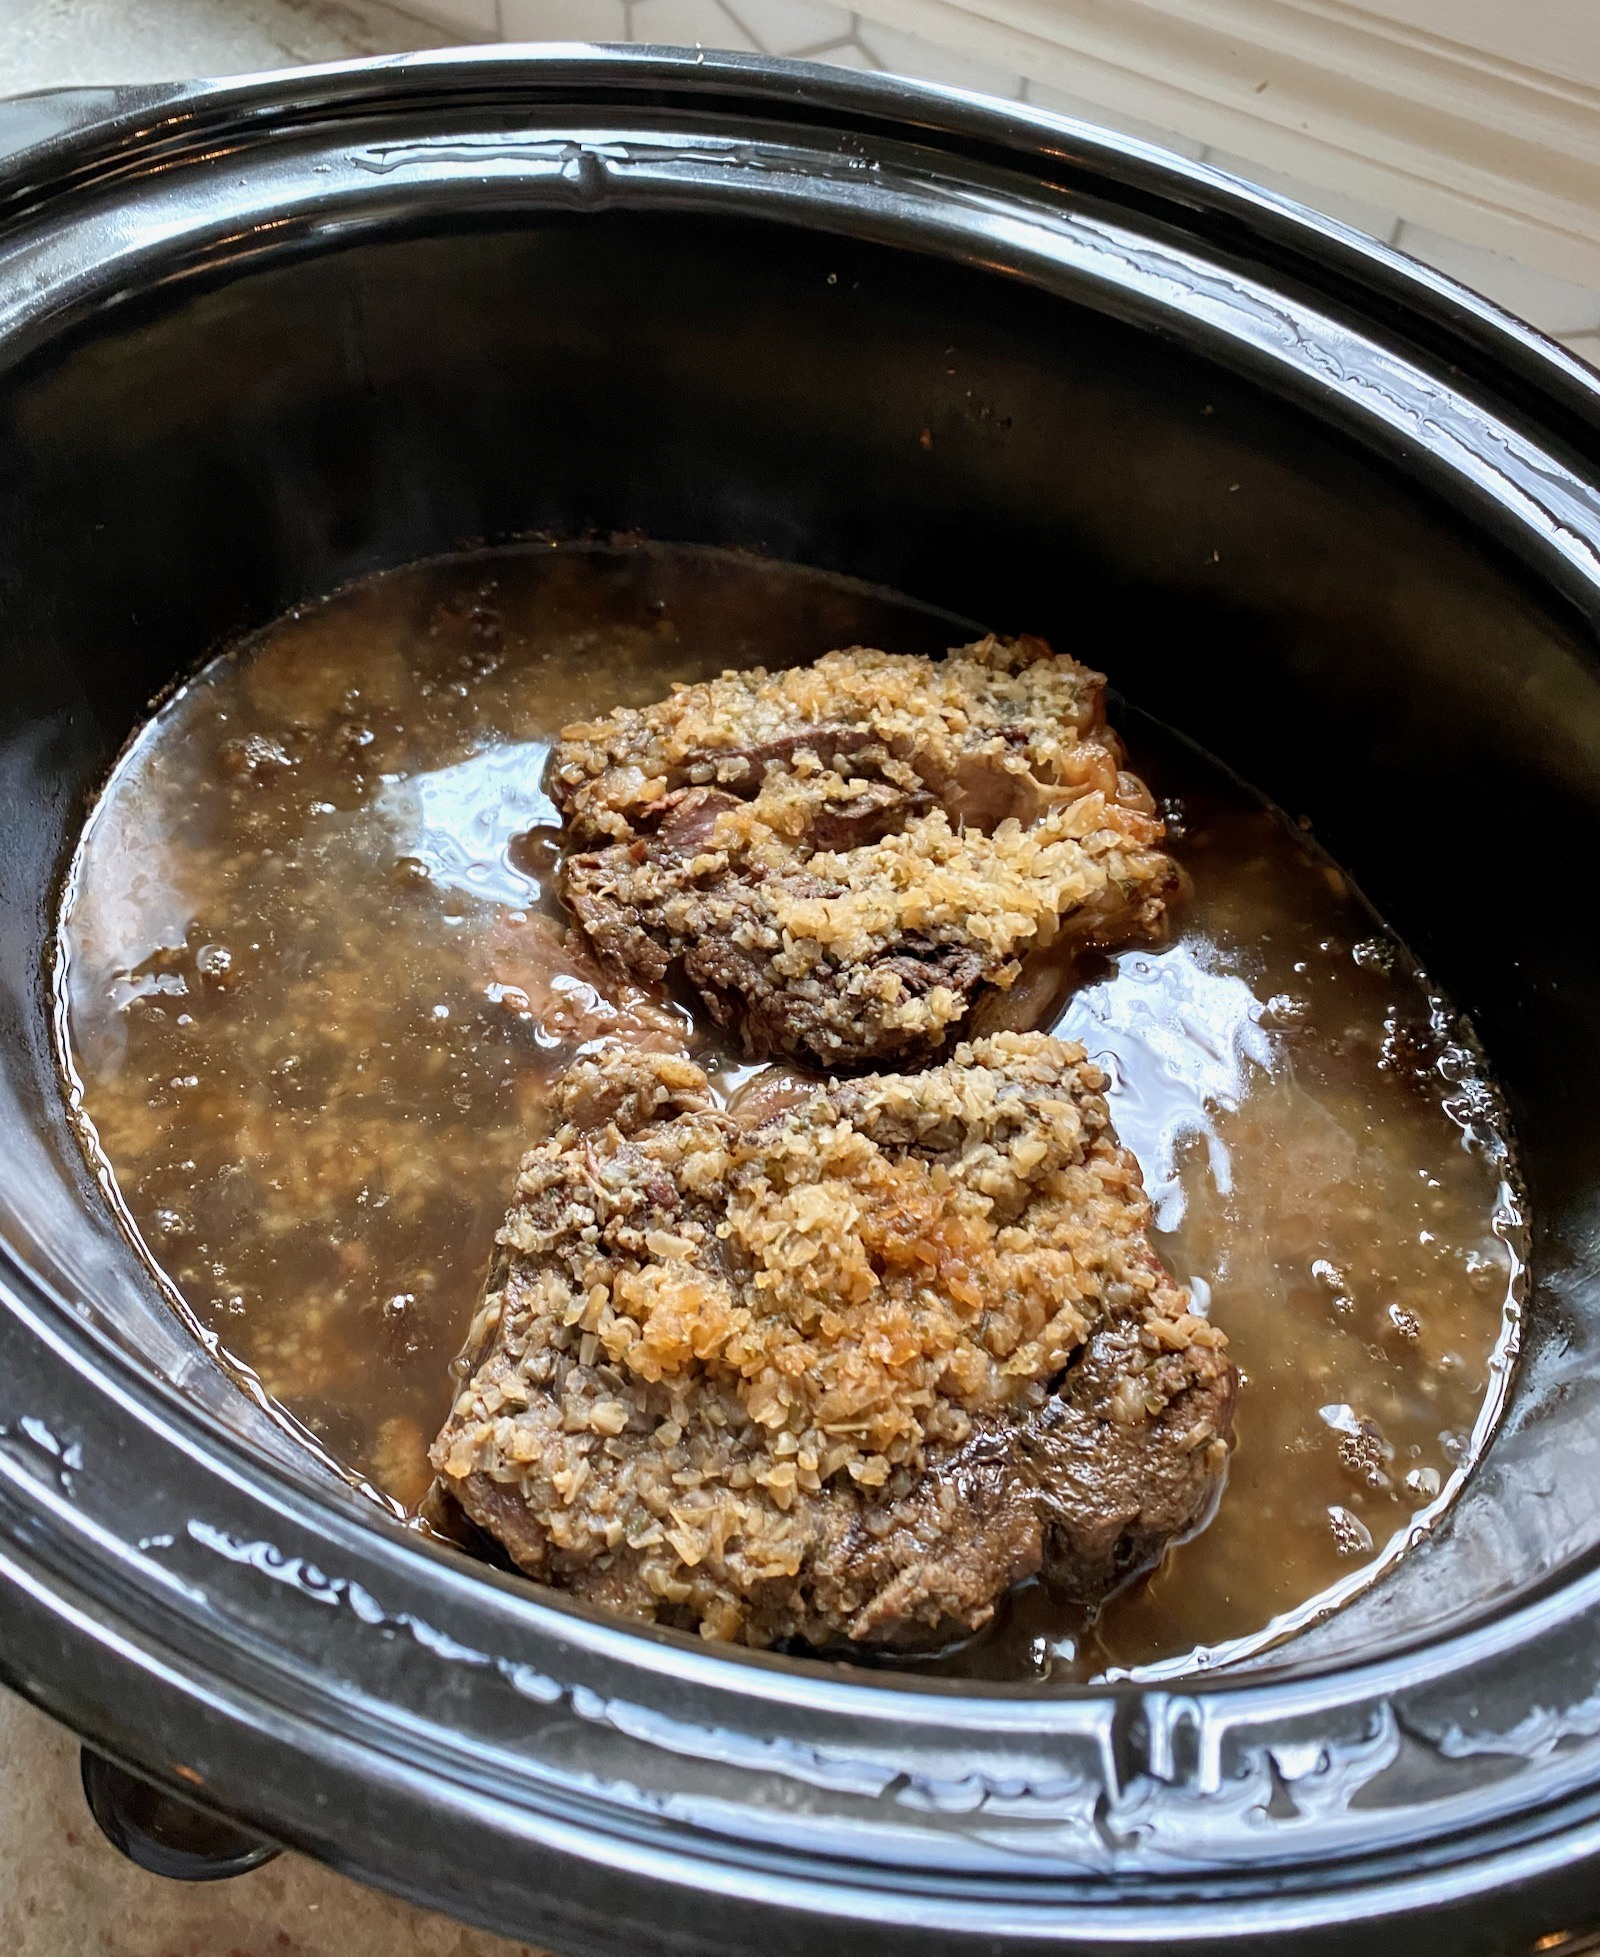 Bake Chuck in a slow cooker with the ingredients for French dipping sauce.